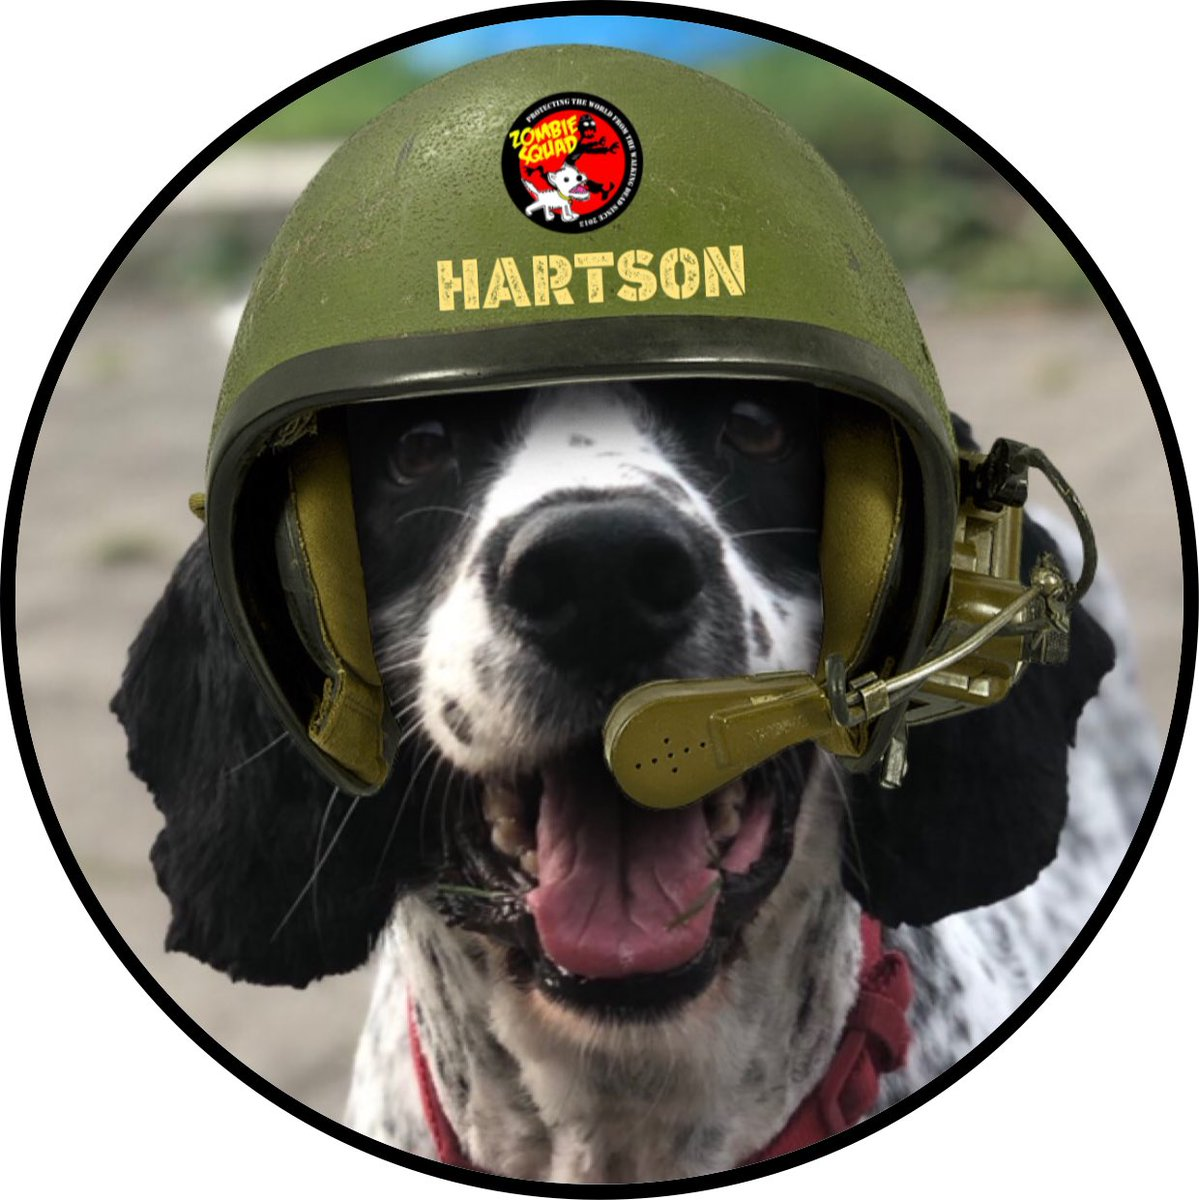 Welcome to #ZSHQ Pvt Hartson @CancerDoggy we have prepared your patrol kit, bark when you need support from @ZombieSquadHQ *salutes* https://t.co/J5zSbCmm8l